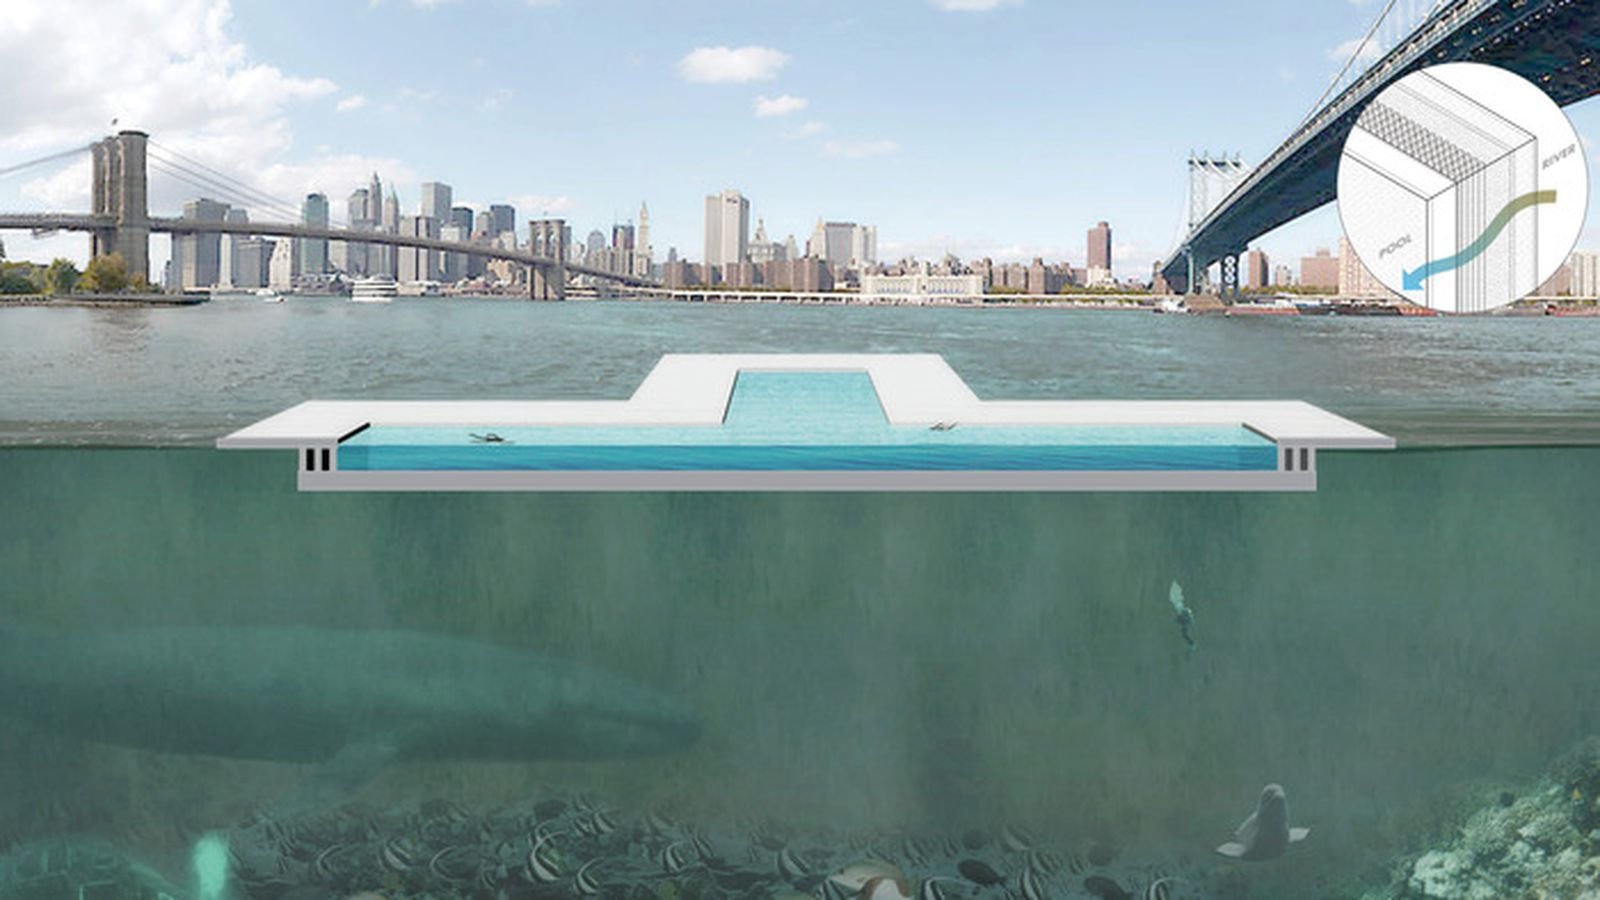 Floating Public Pool That Filters New York 39 S East River Seeks Crowdfunding The Verge